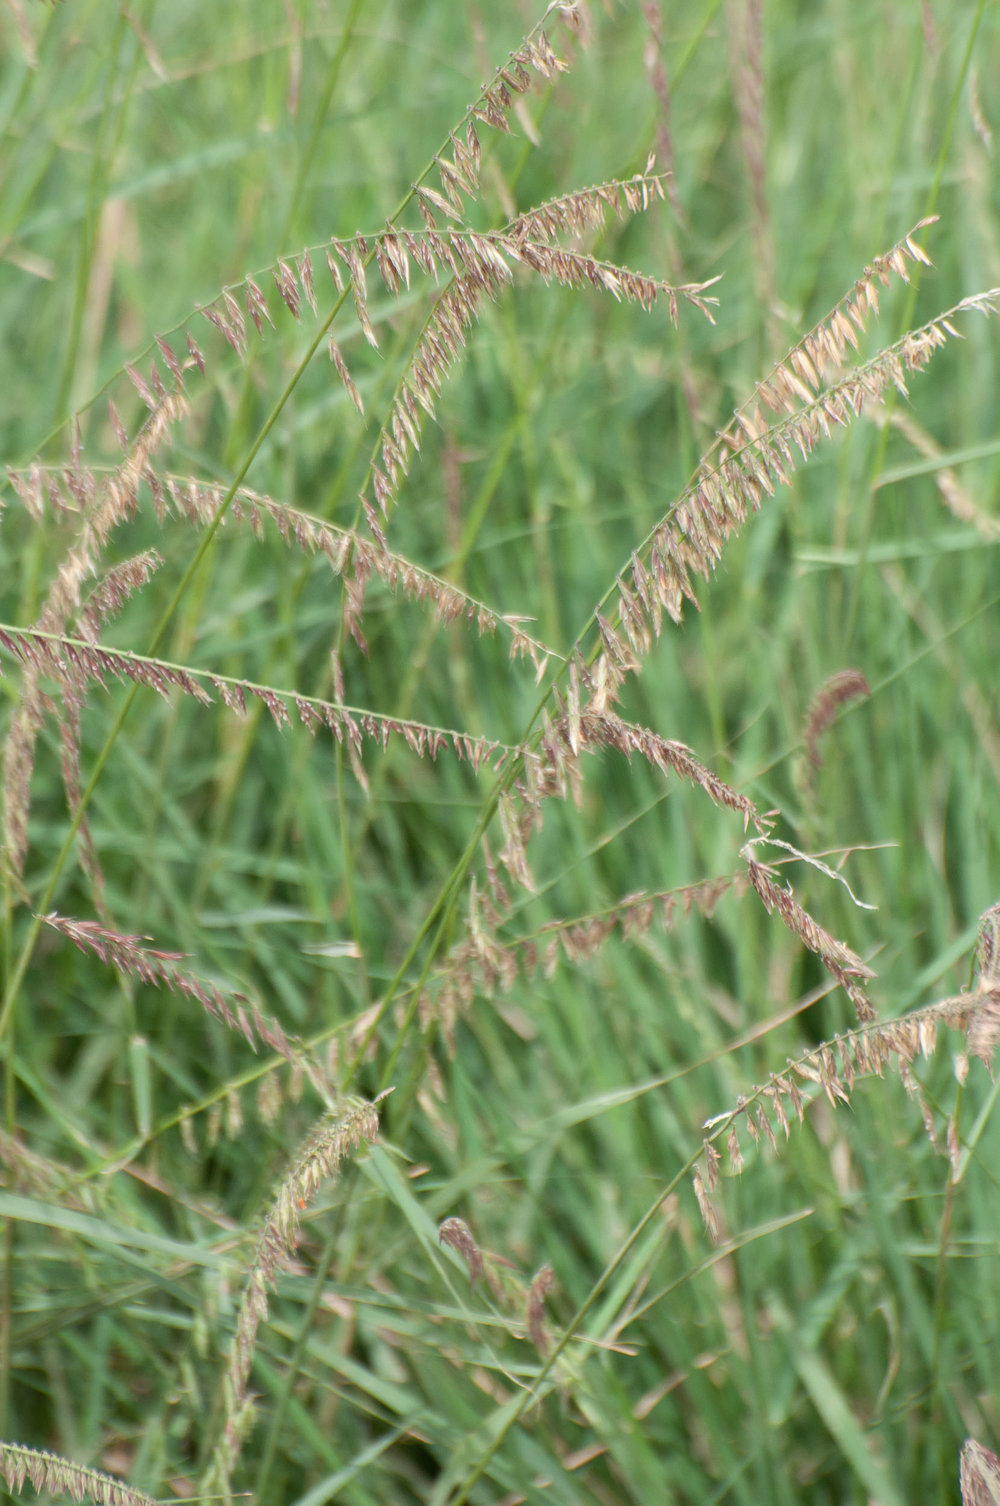 South Texas Sideoats